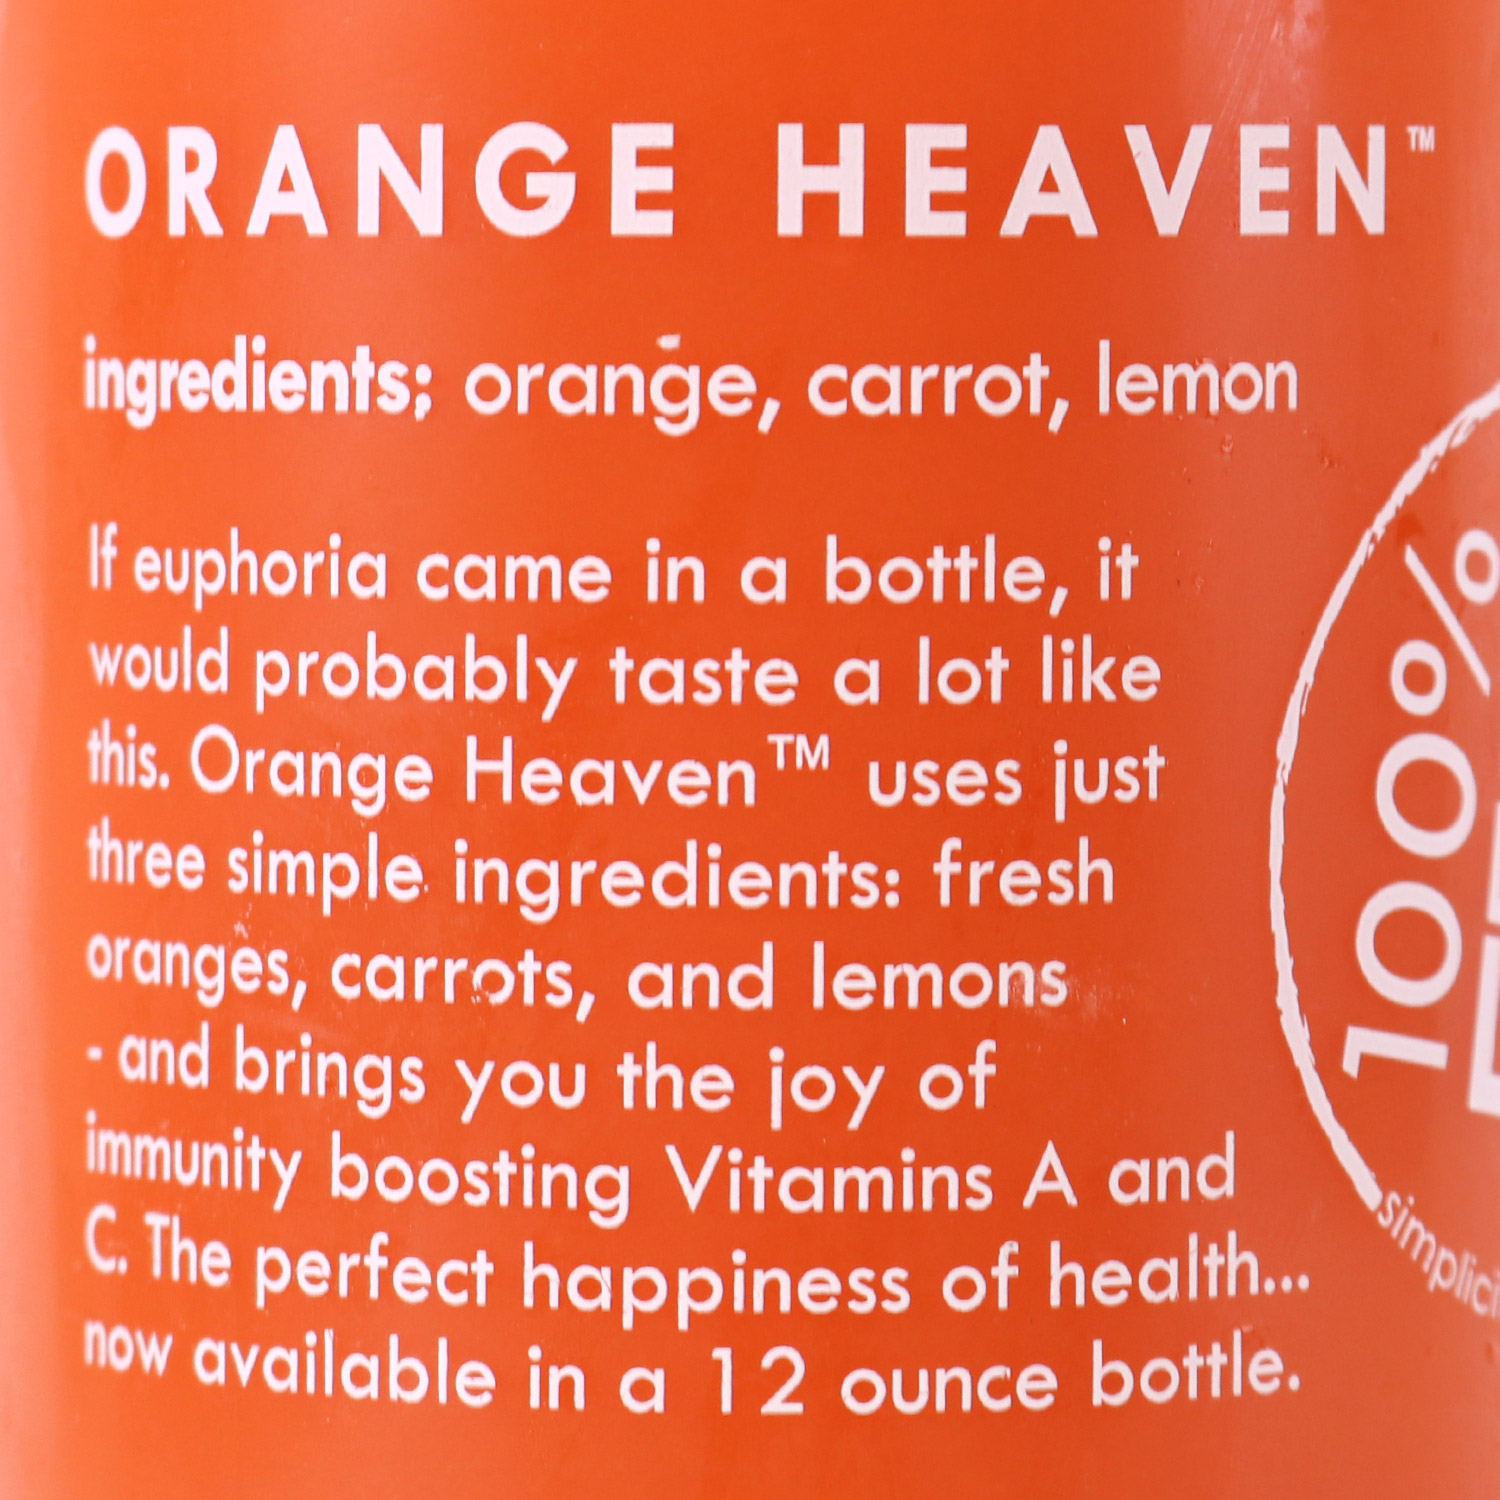 Juice, Orange Heaven